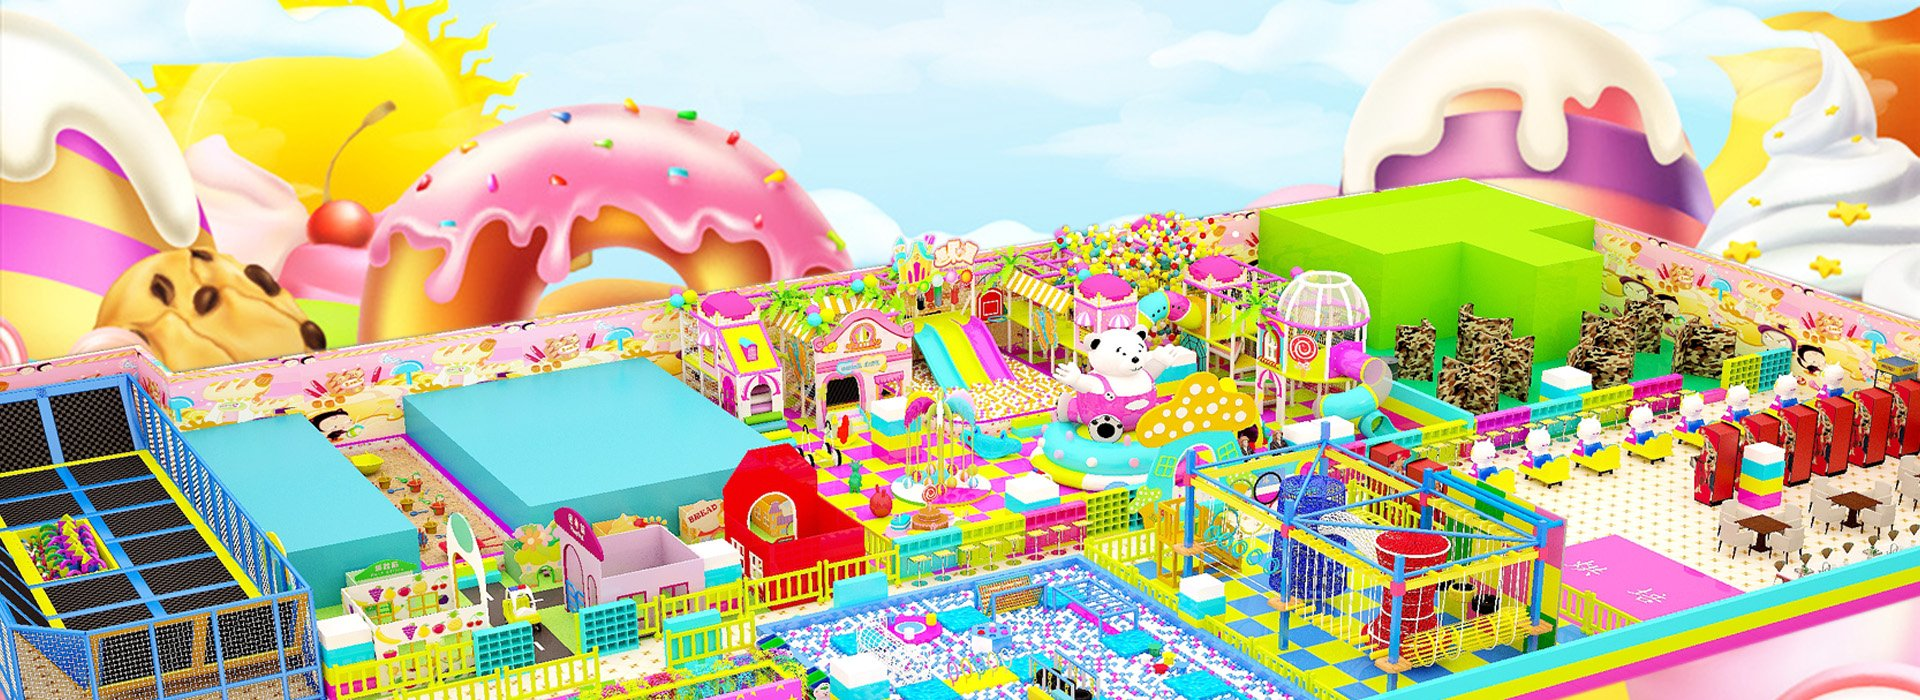 Candy Themed Soft Indoor Playground in China